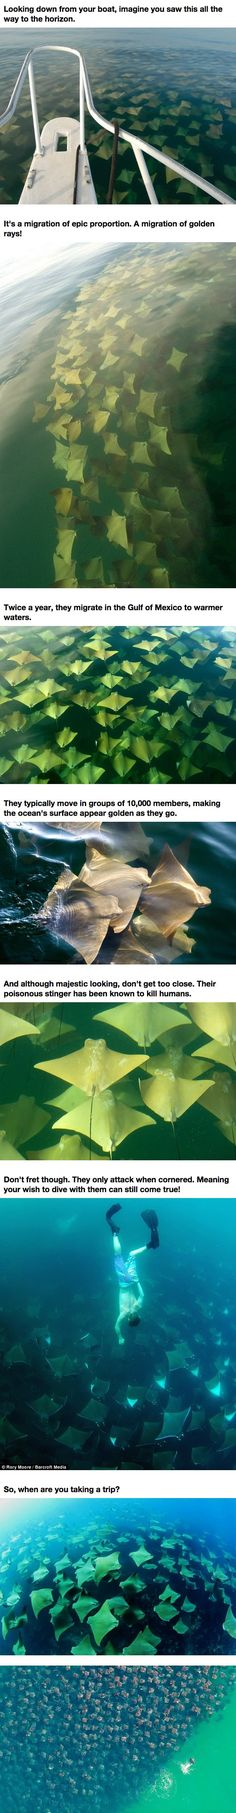 What Was Discovered Moving Through The Ocean Is Terrifying Beyond Words. What...